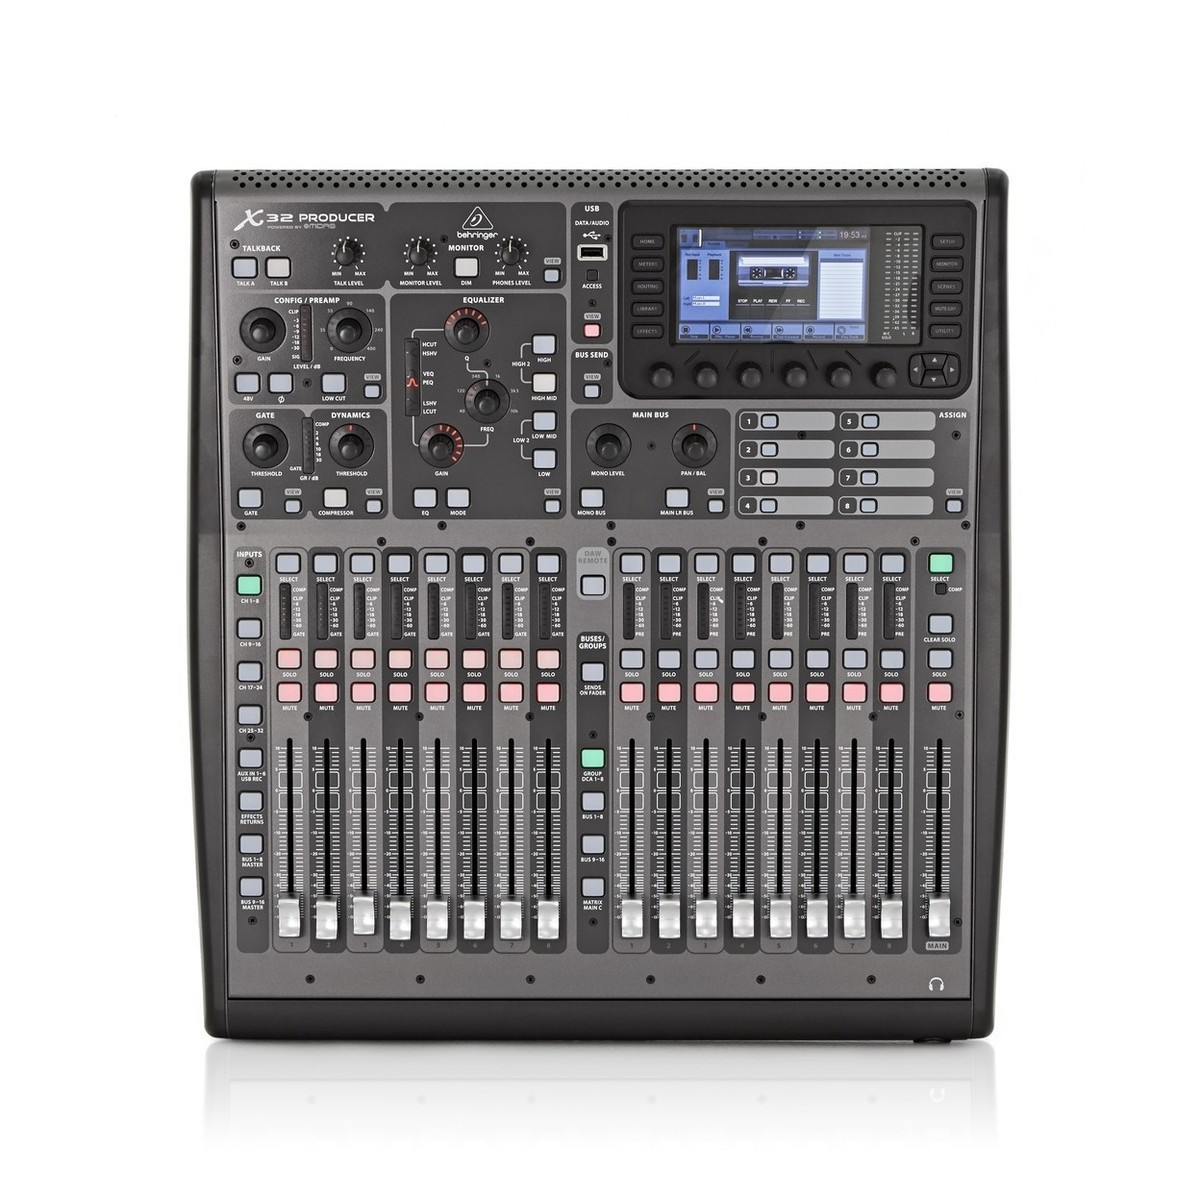 Behringer X32 PRODUCER Digital Mixing Console - B-Stock